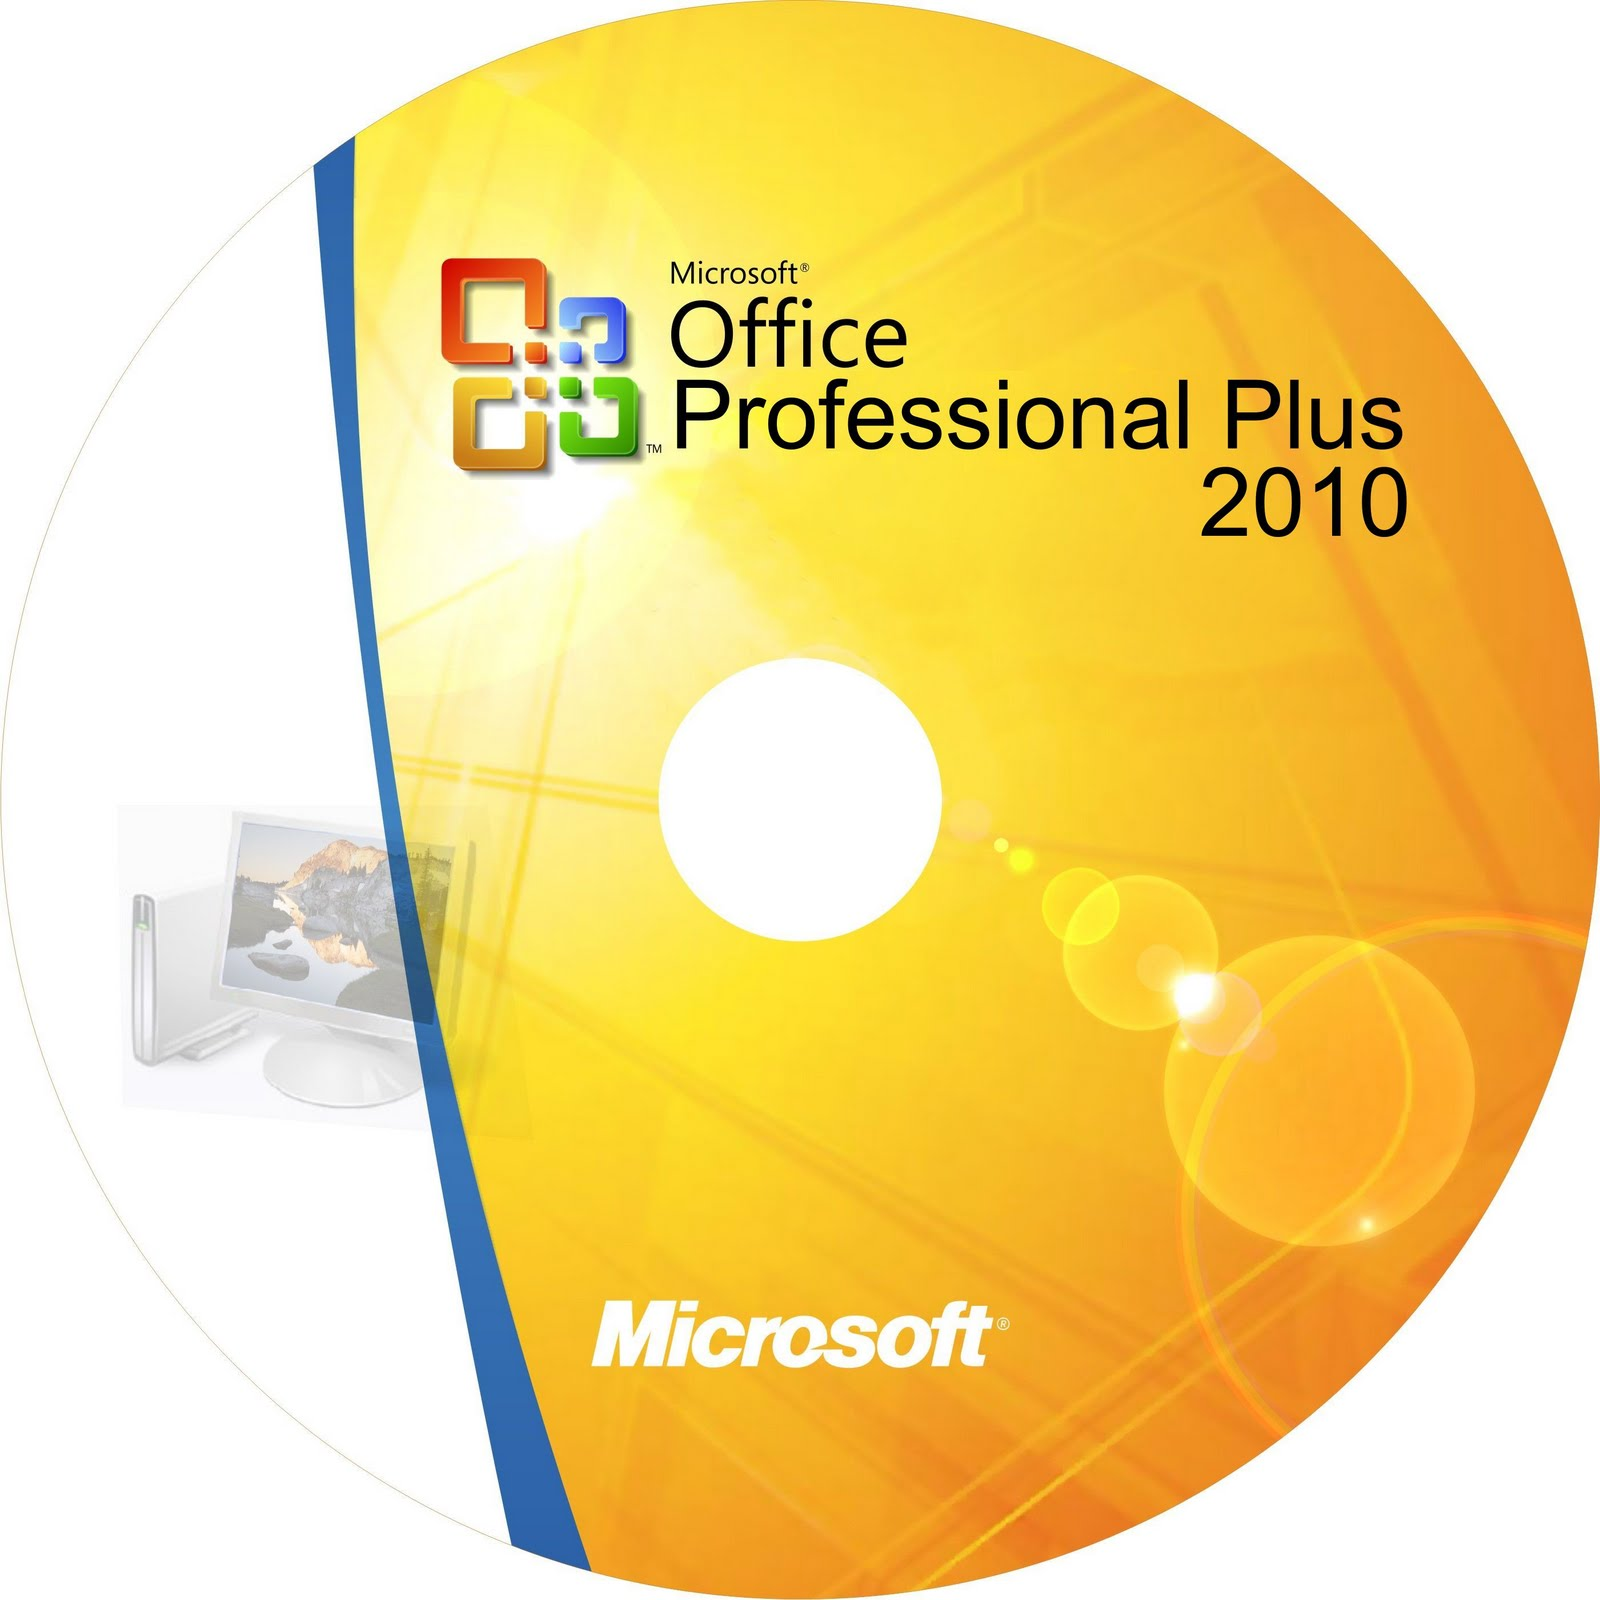 Microsoft office 2010 professional plus activator serial key